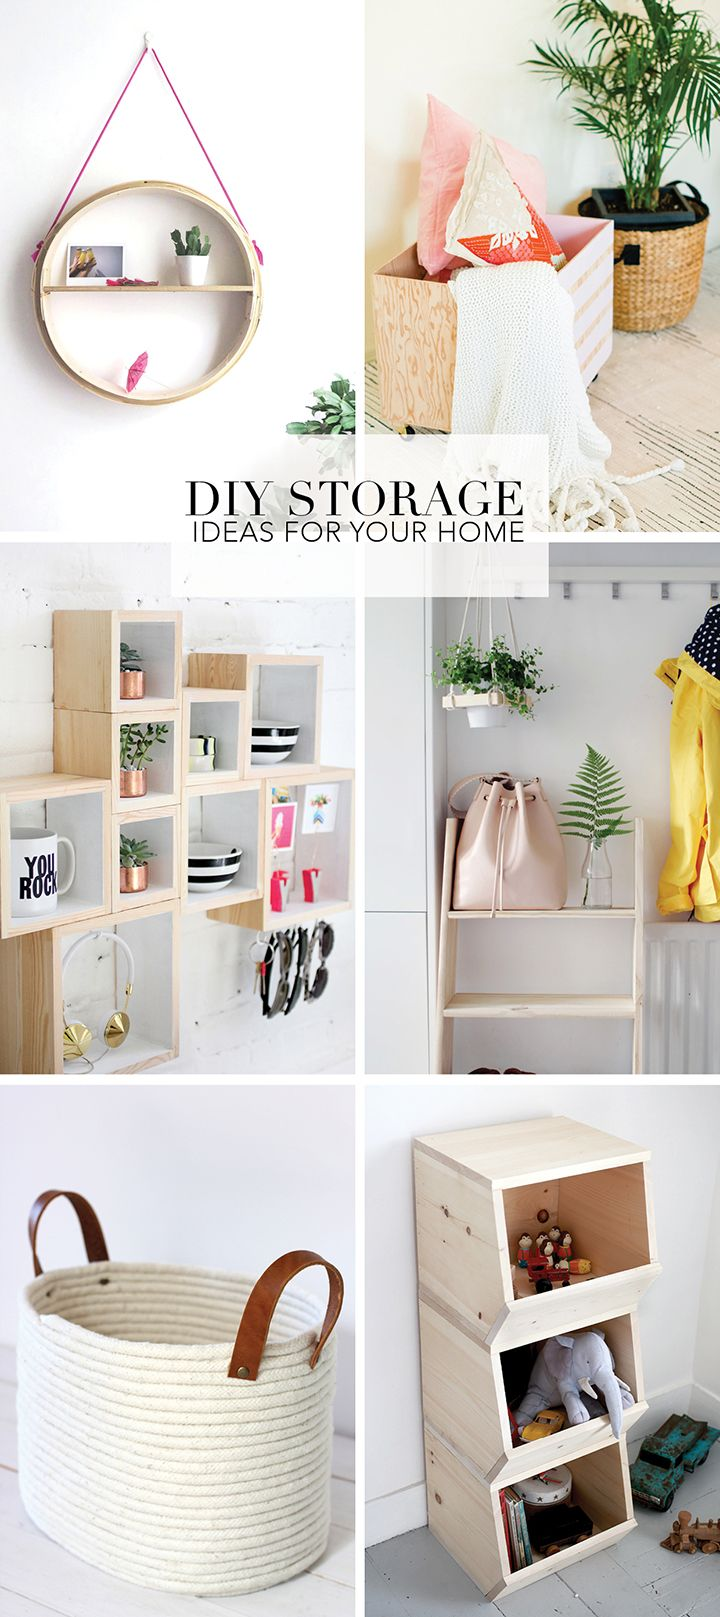 We've put together a list of some of favorite DIY home storage ideas. Time to organize! These projects will get you inspired to get organized!